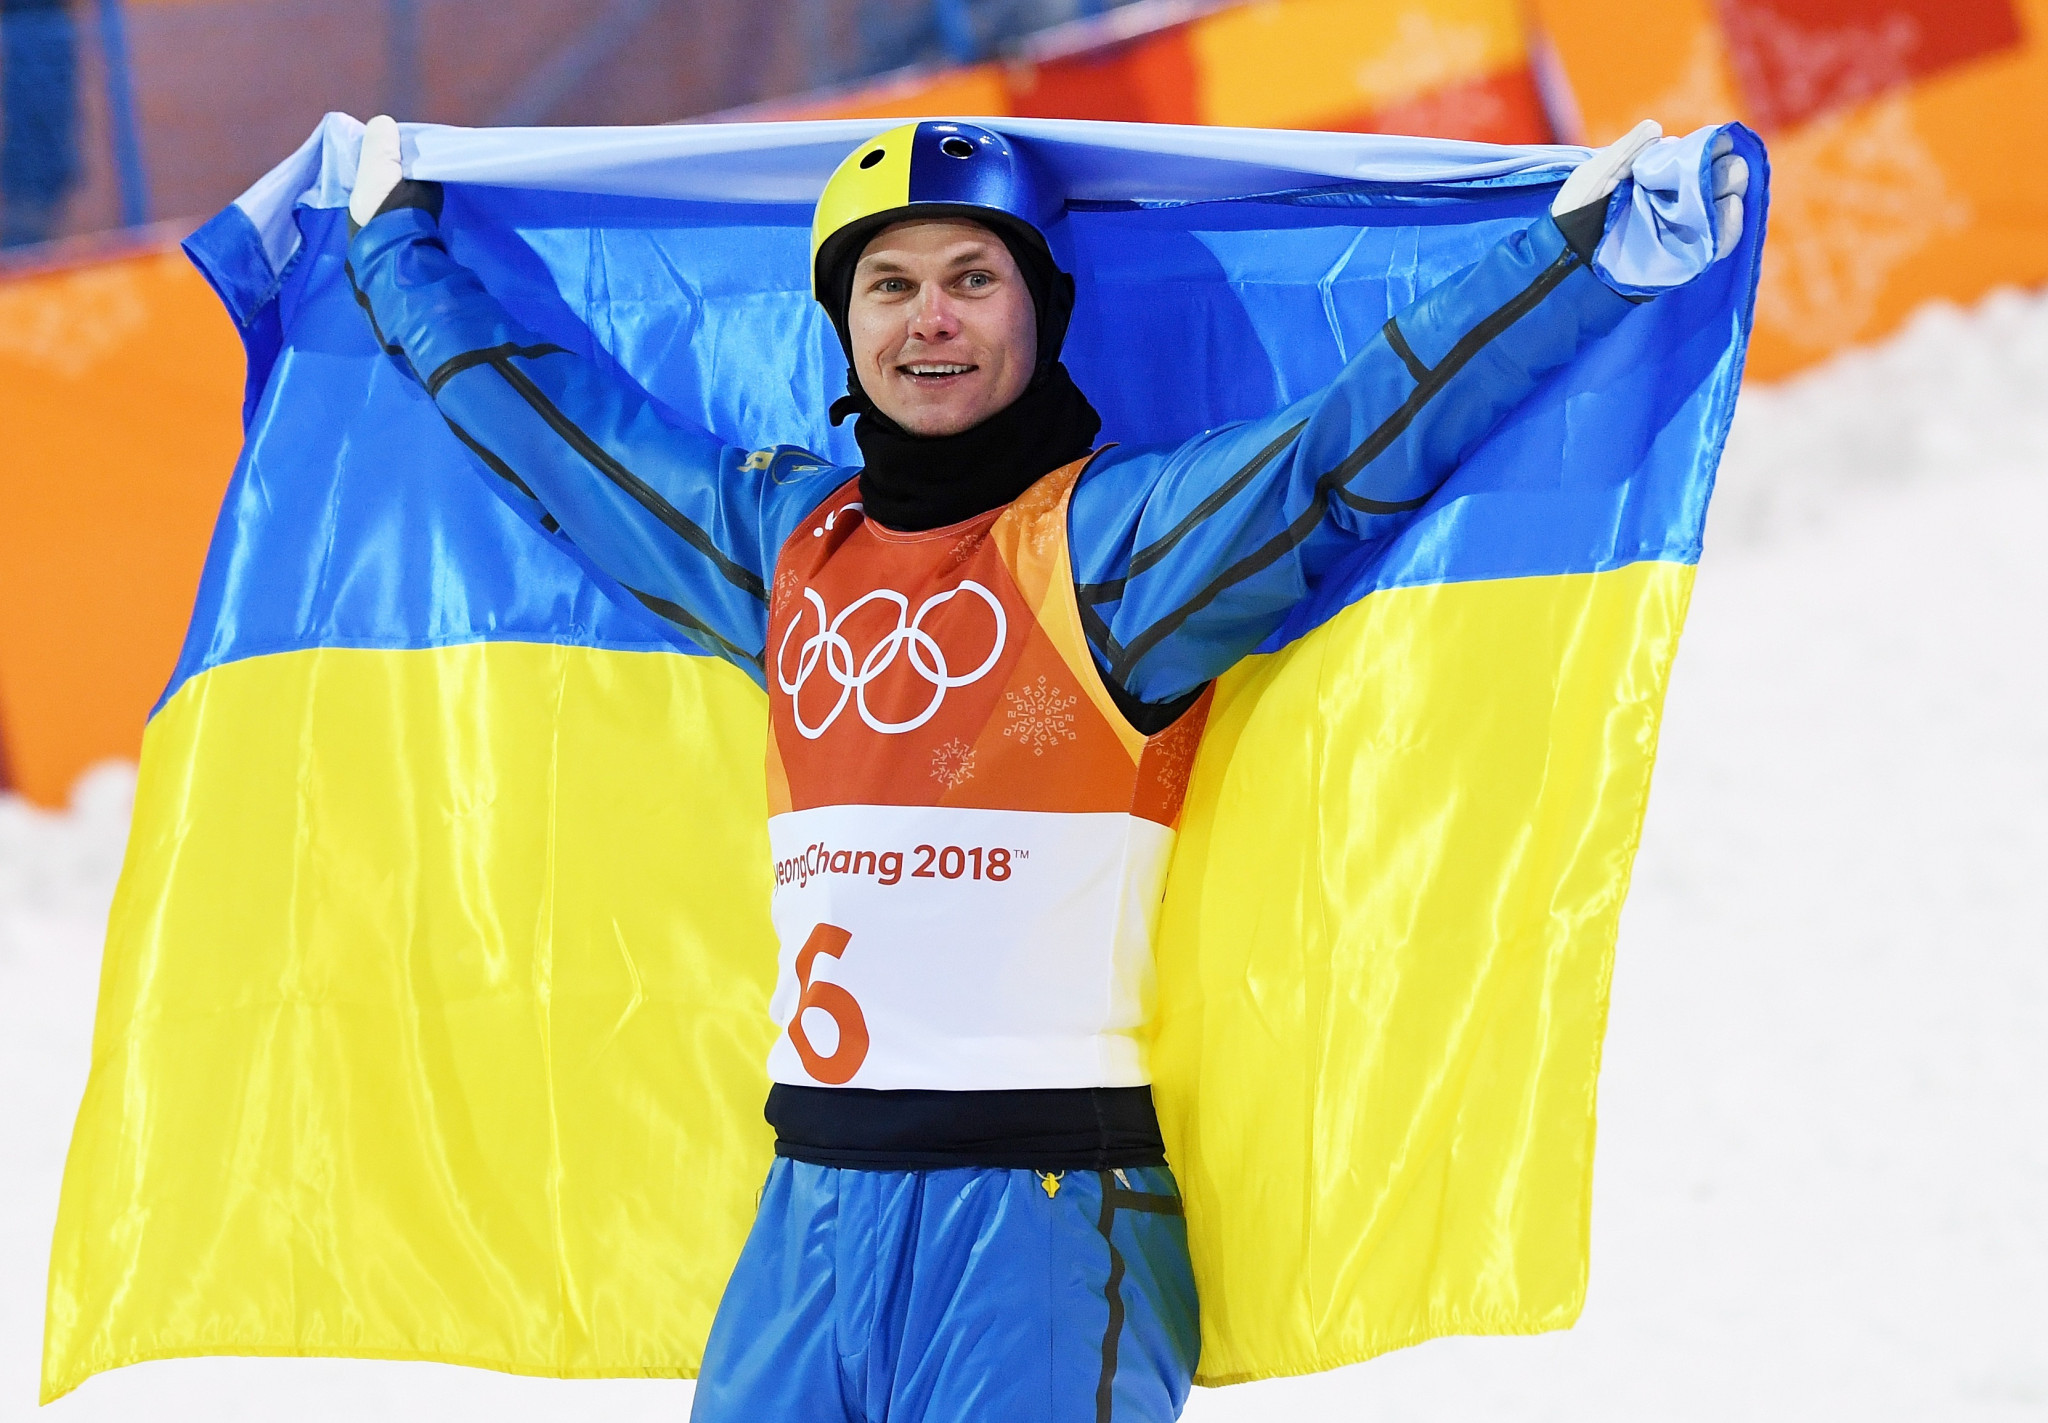 Abramenko becomes first man from Ukraine to win Olympic medal with gold in men's aerials